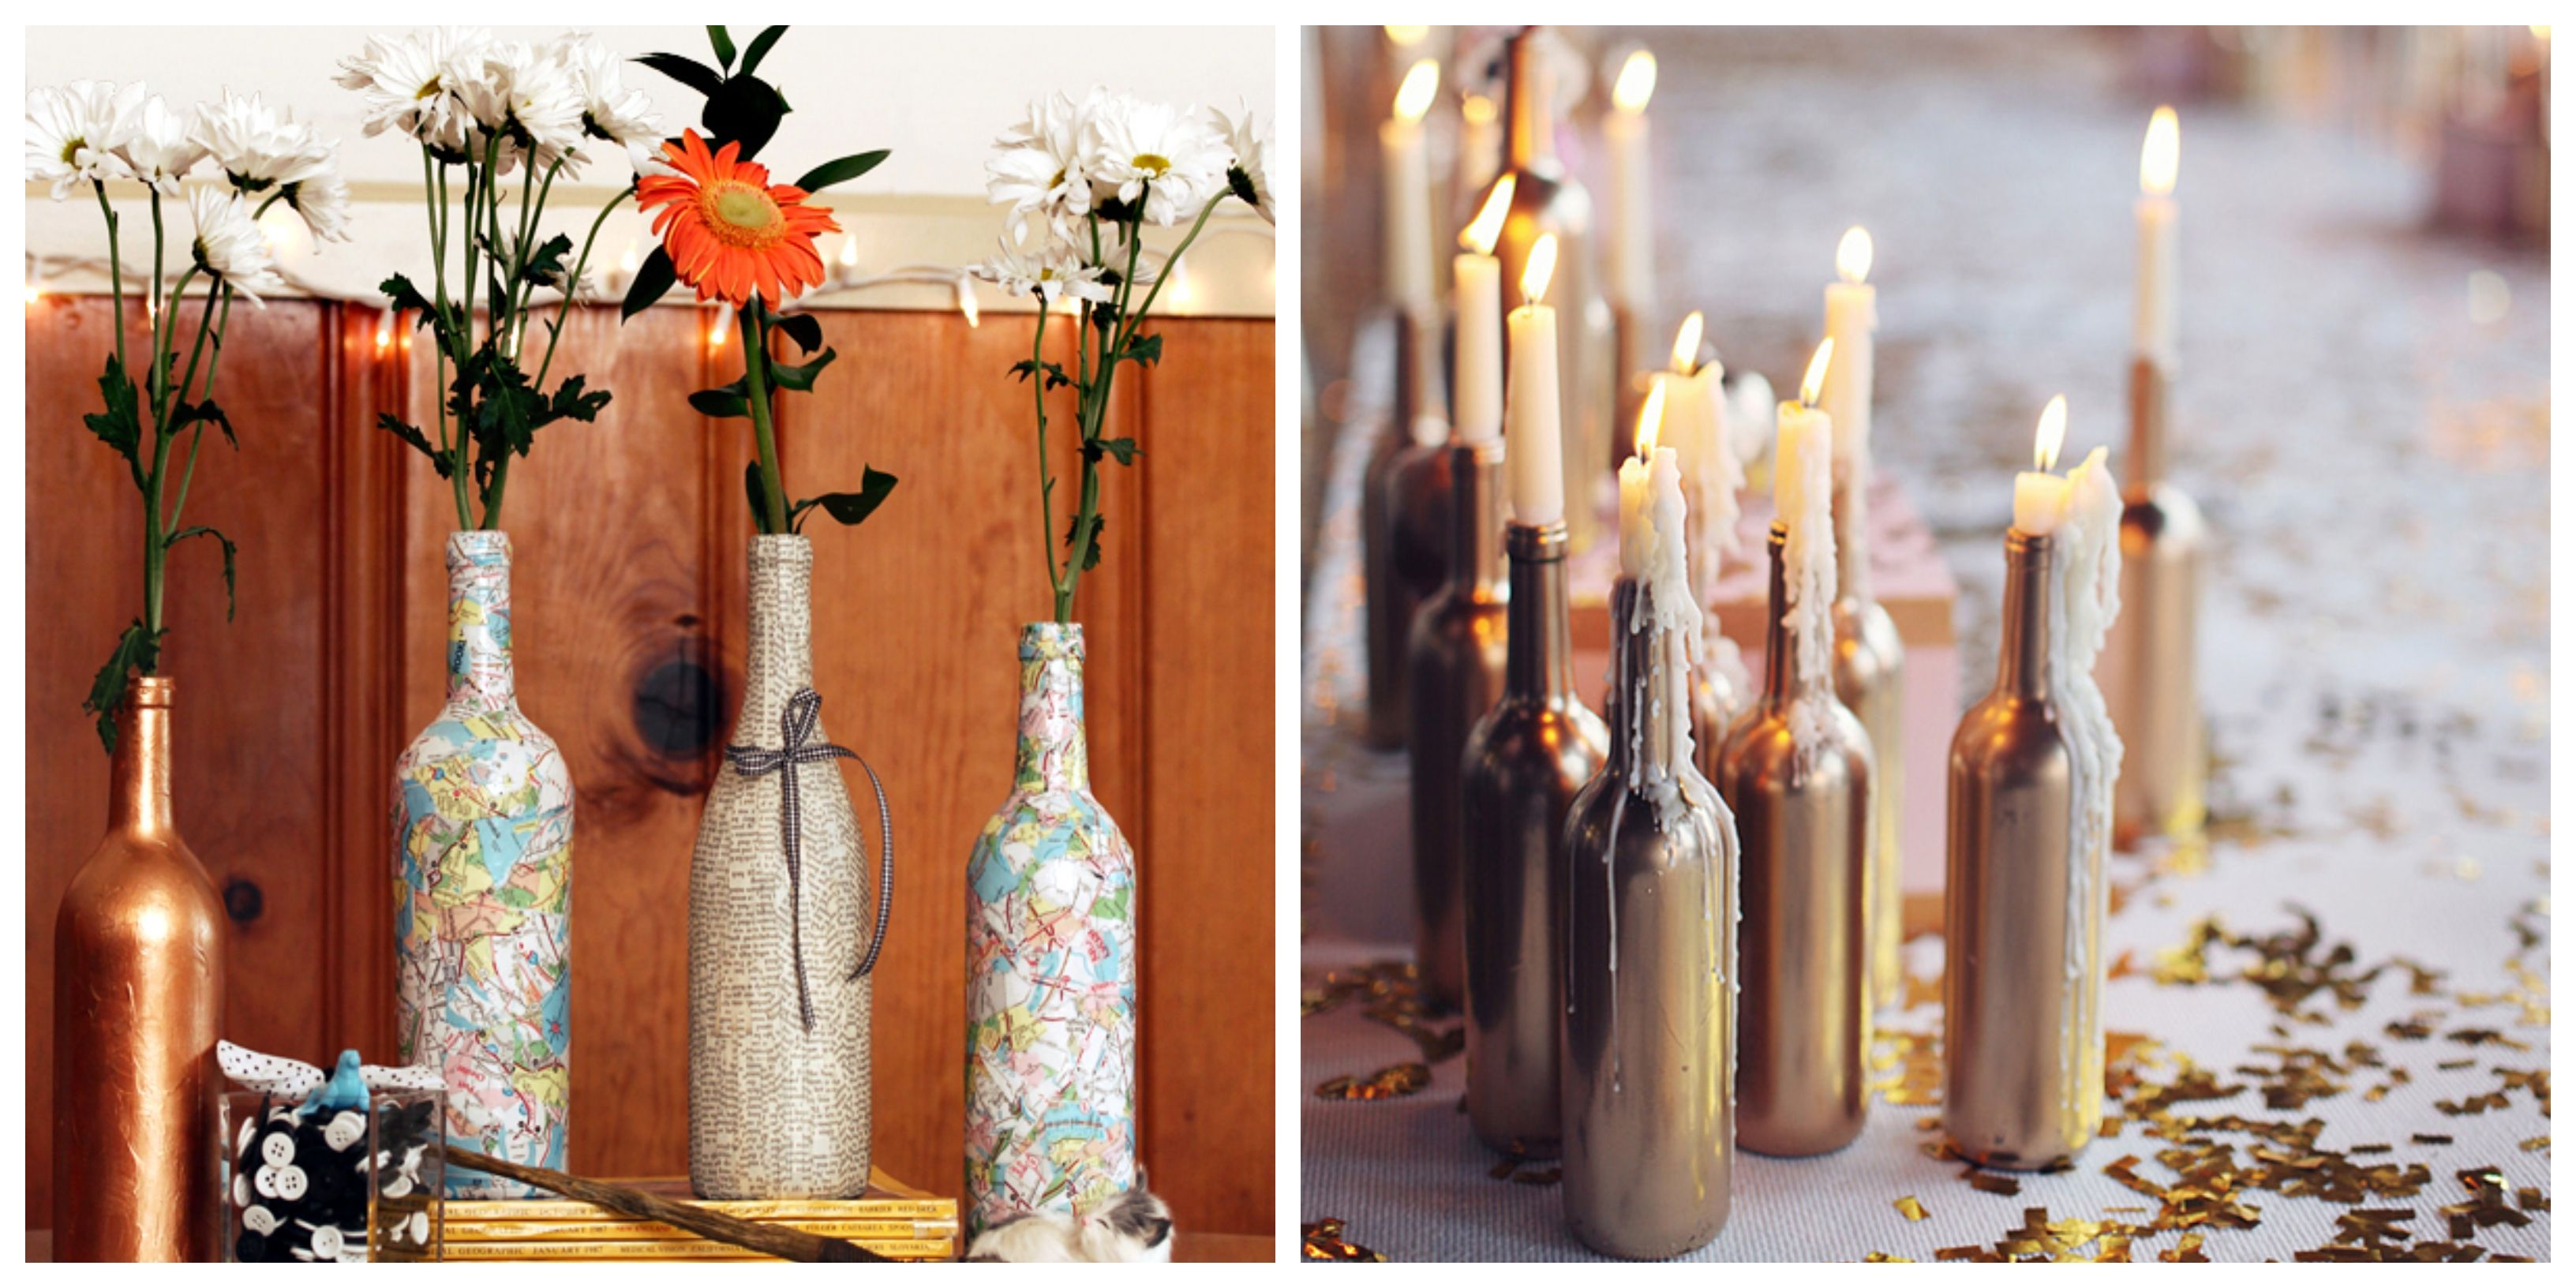 23 Unique Wine Bottle Centerpieces for Dressing up Your Home on a Budget